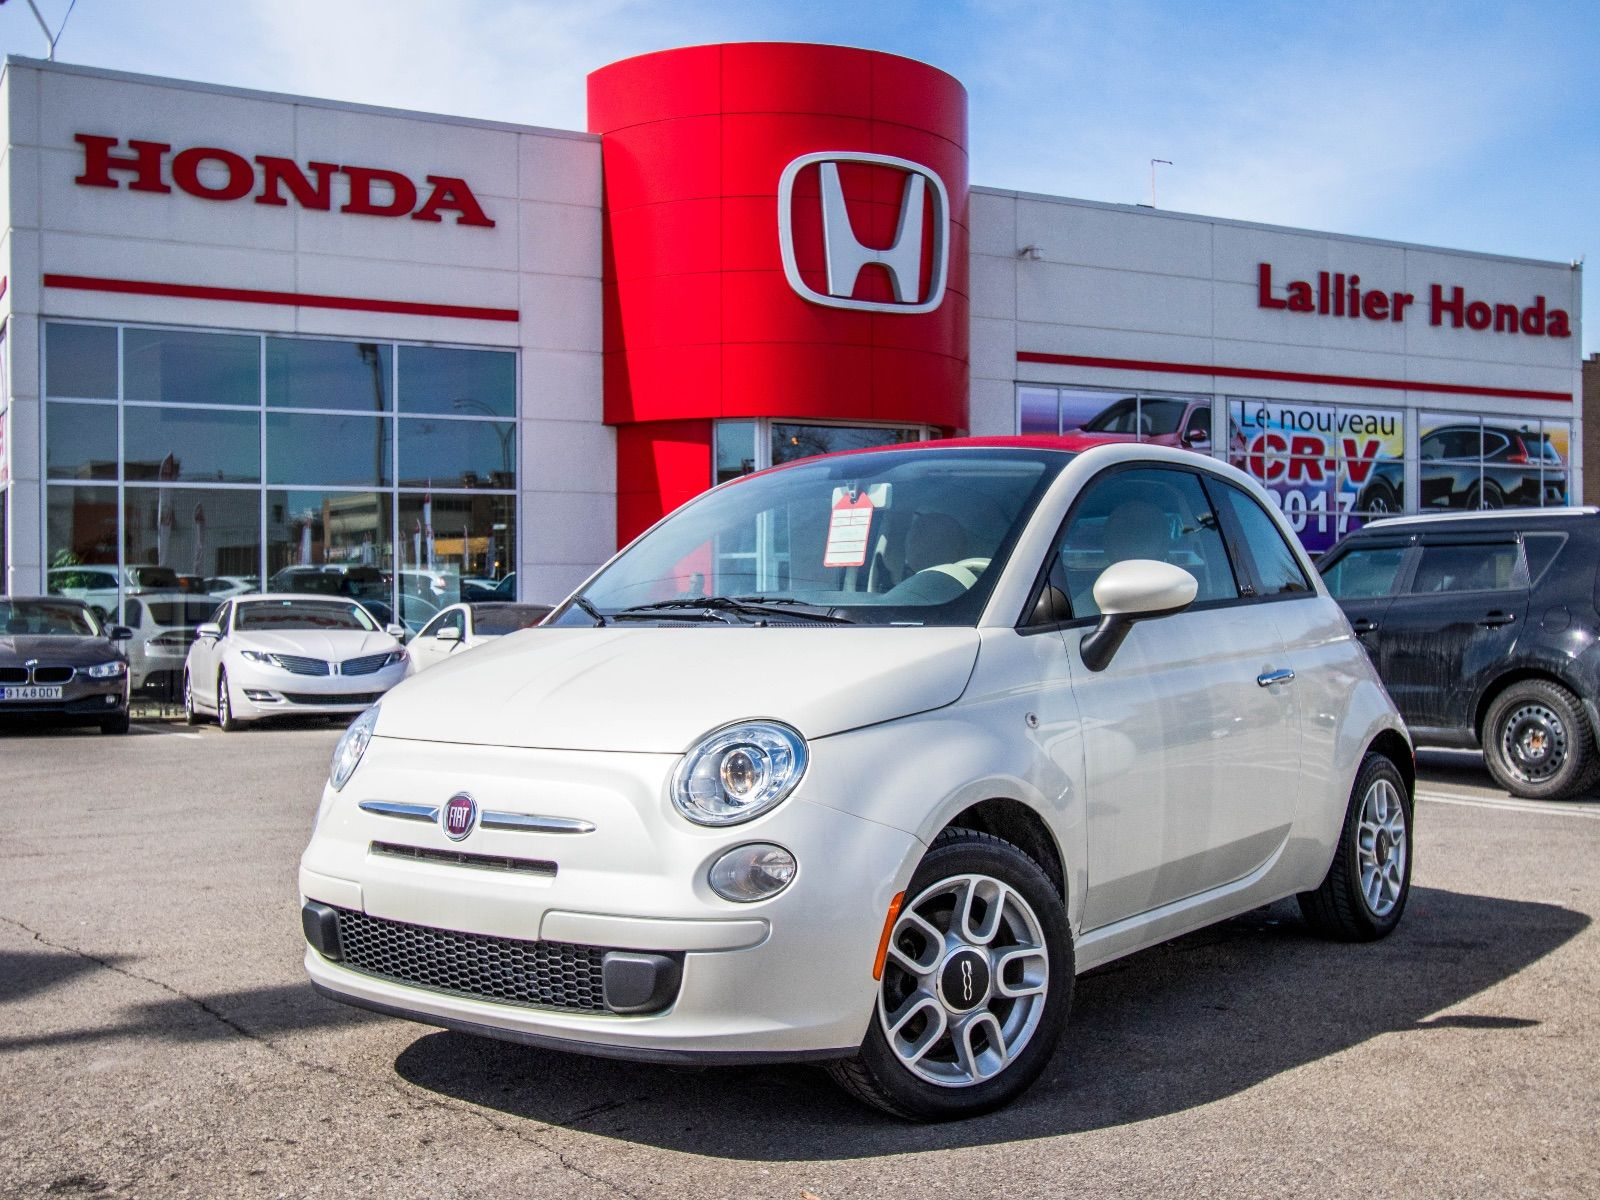 fiat 500c pop pneus hiver pneus t 2012 d 39 occasion lallier honda montreal. Black Bedroom Furniture Sets. Home Design Ideas